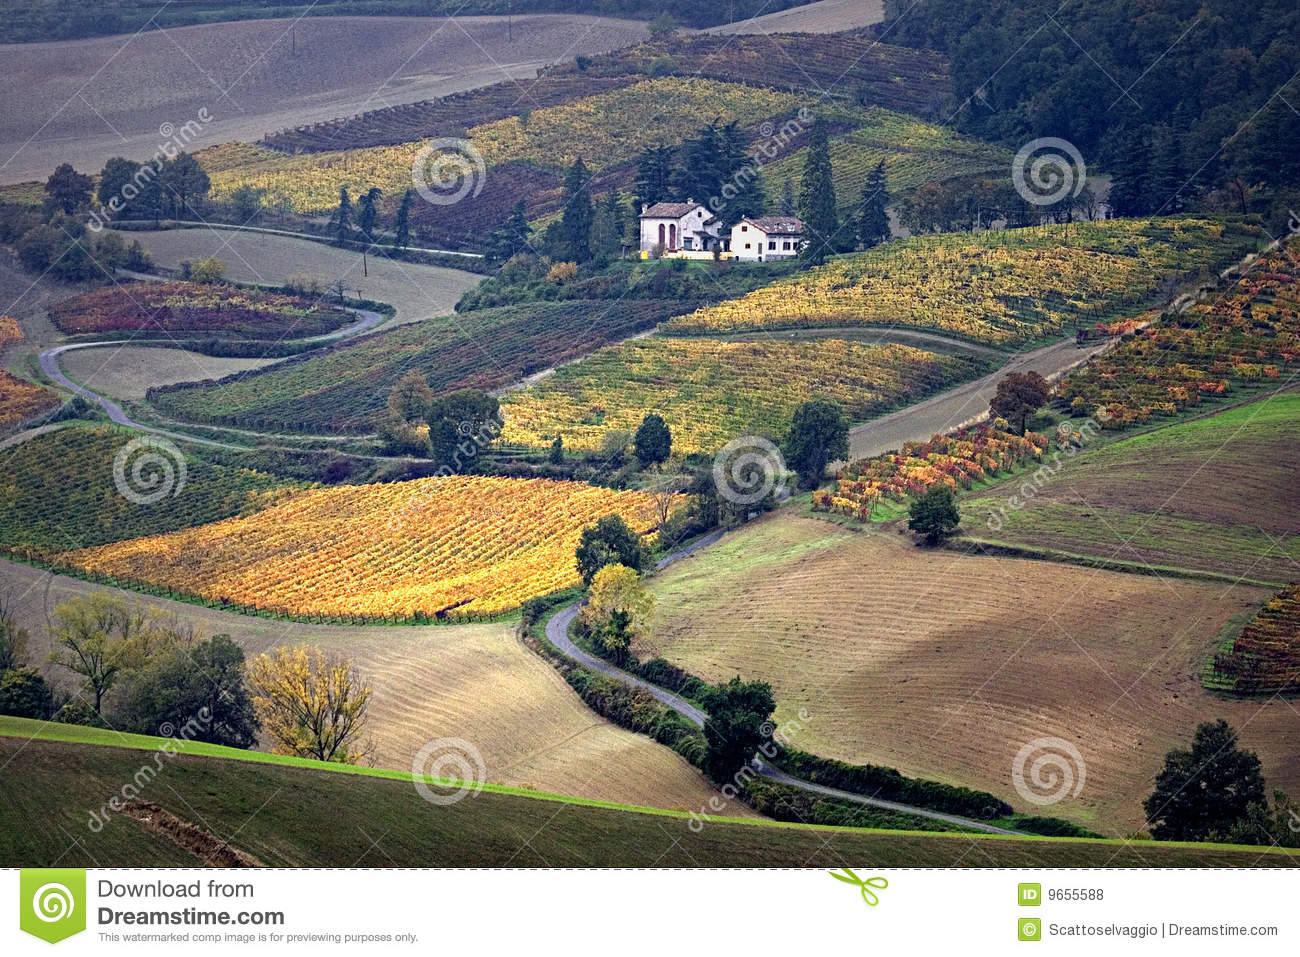 Italian country: Oltrepò Pavese. Vineyards and fields in Italy, Pavia.